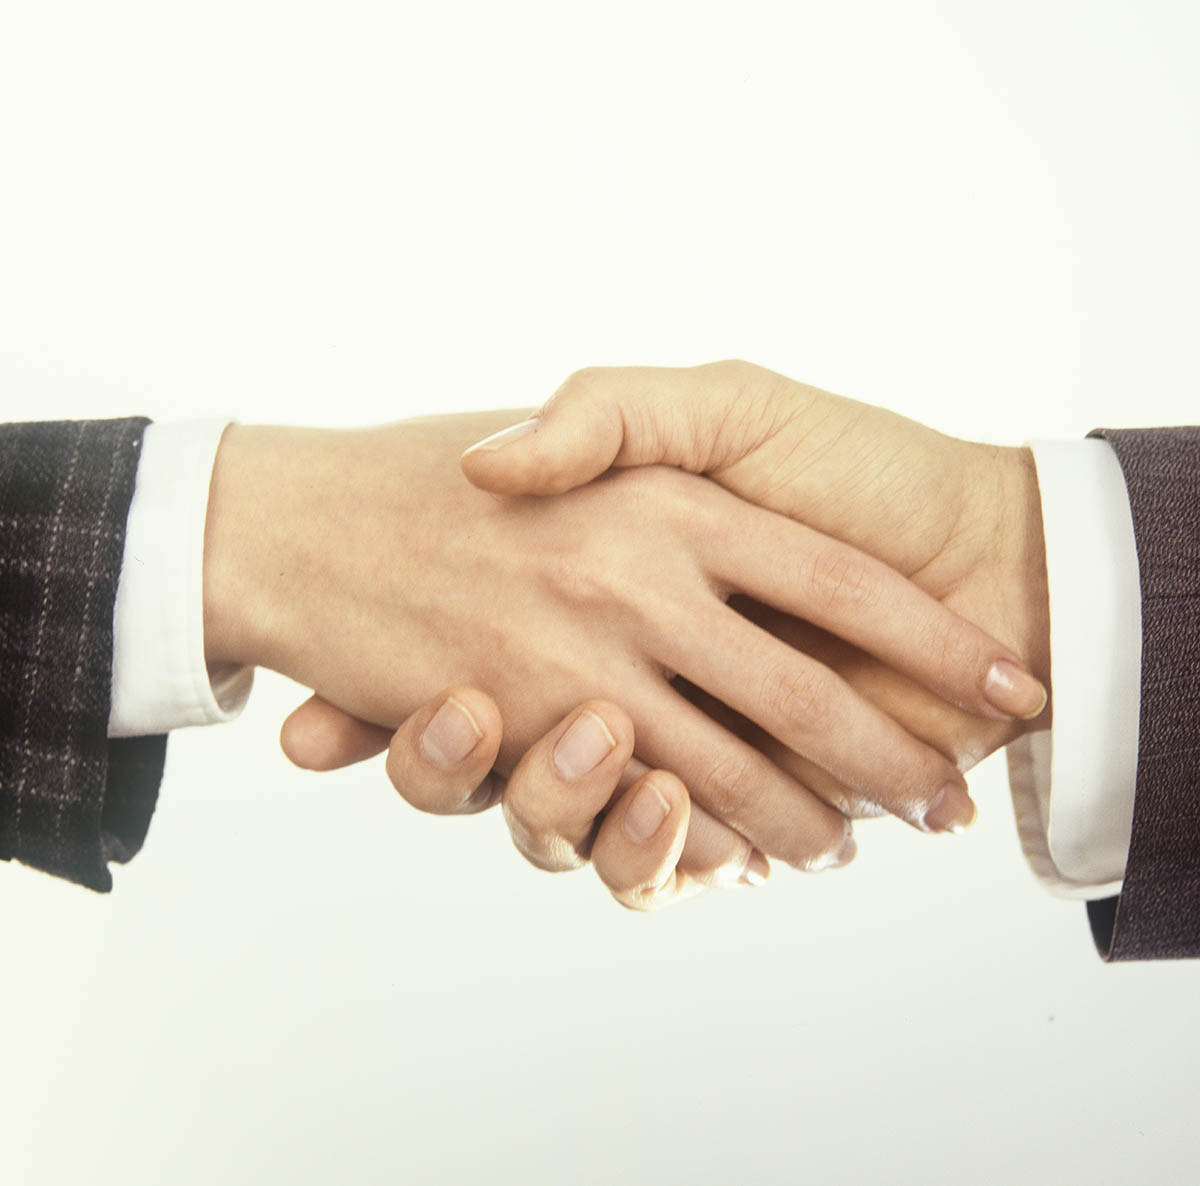 Free stock photo Handshake with a businessman and businesswoman